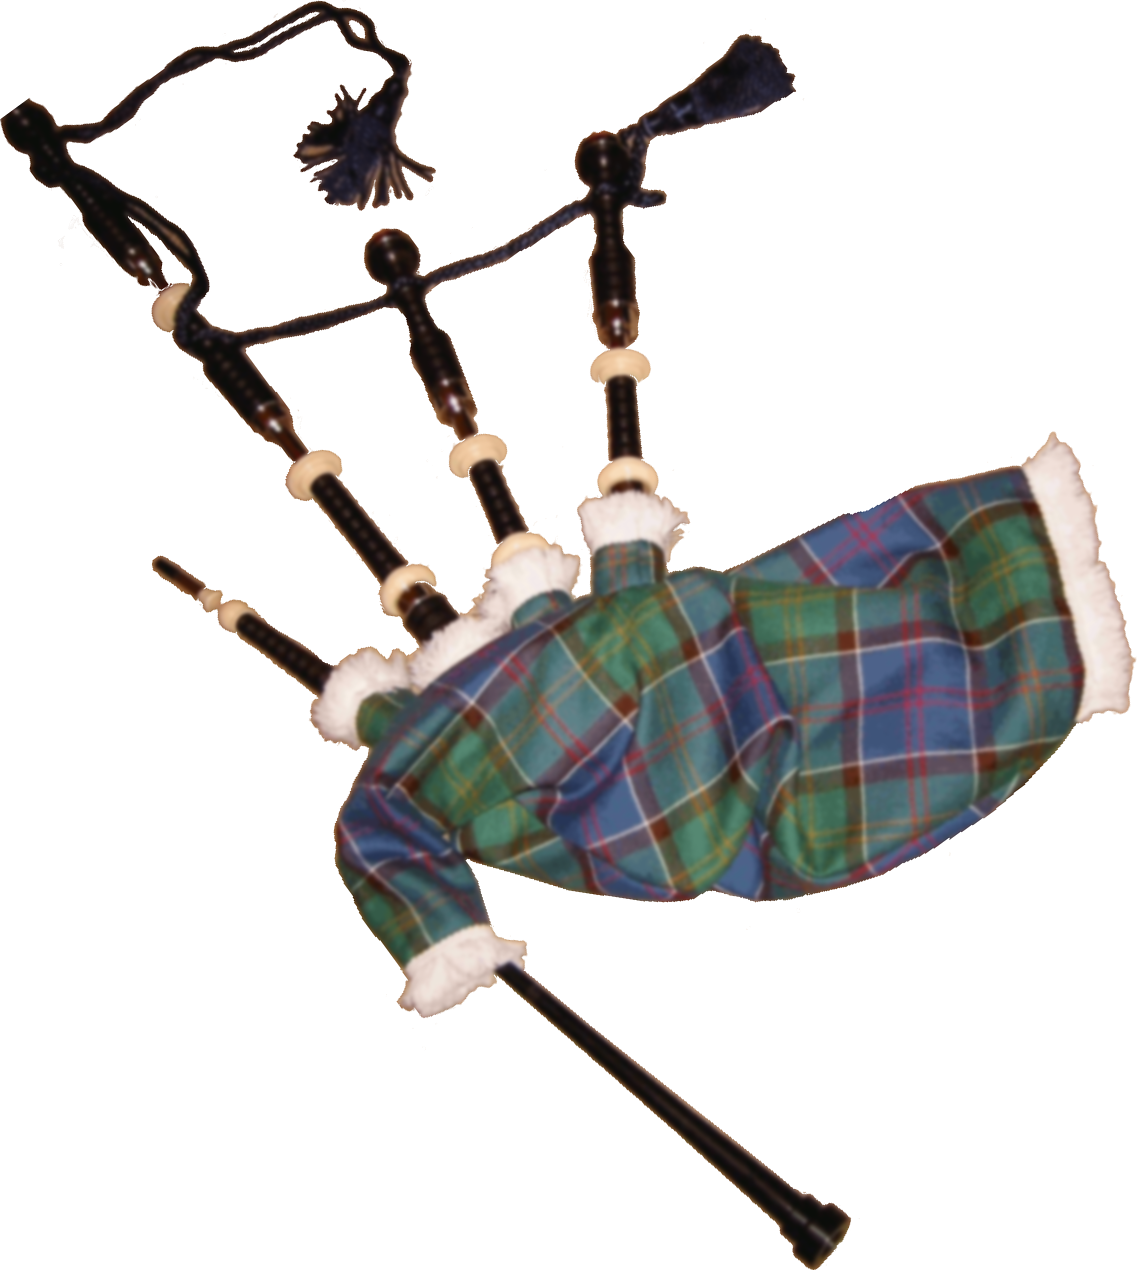 Bagpipe Free Images At Clker Com Vector Clip Art Online Royalty Free Amp Public Domain